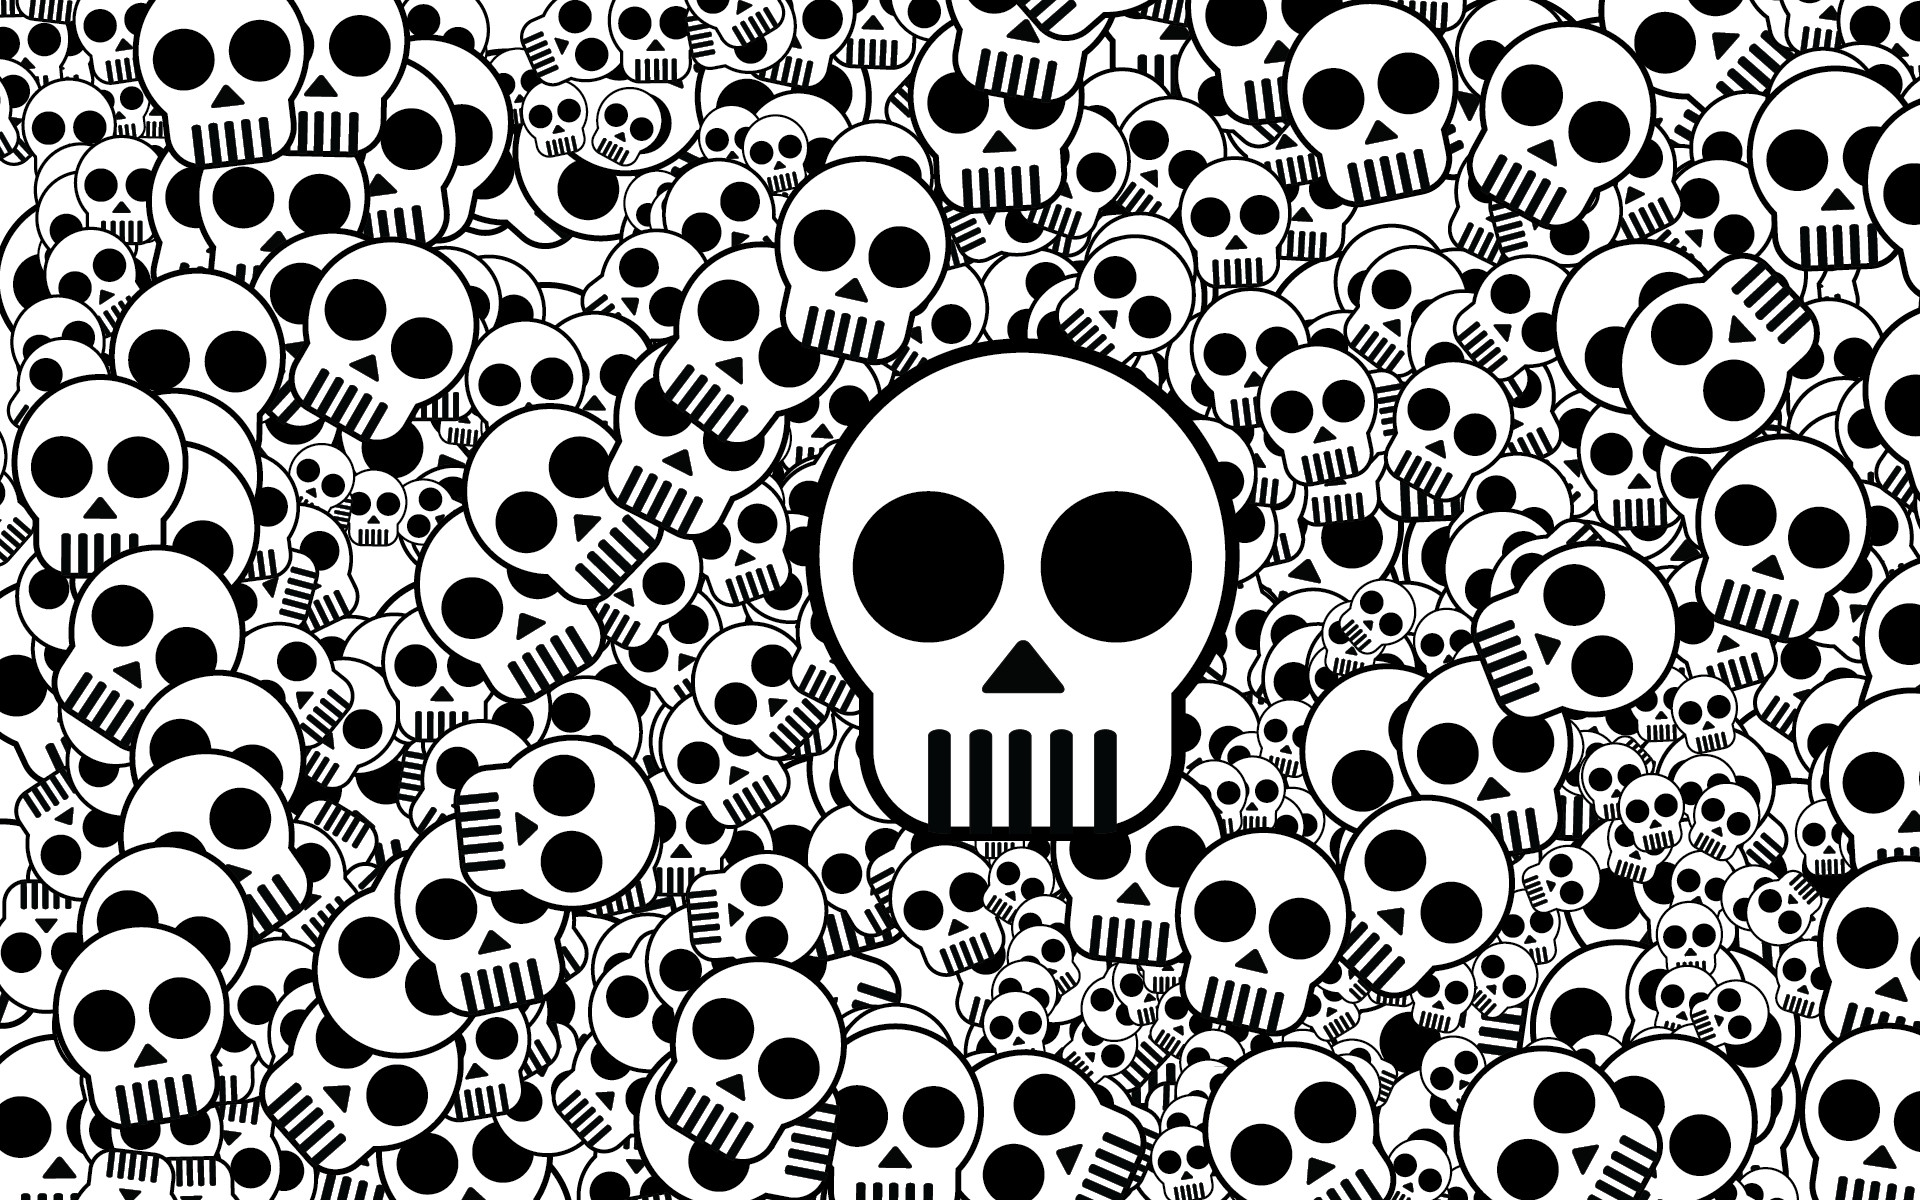 Res: 1920x1200, hd skulls wallpapers - Google Search